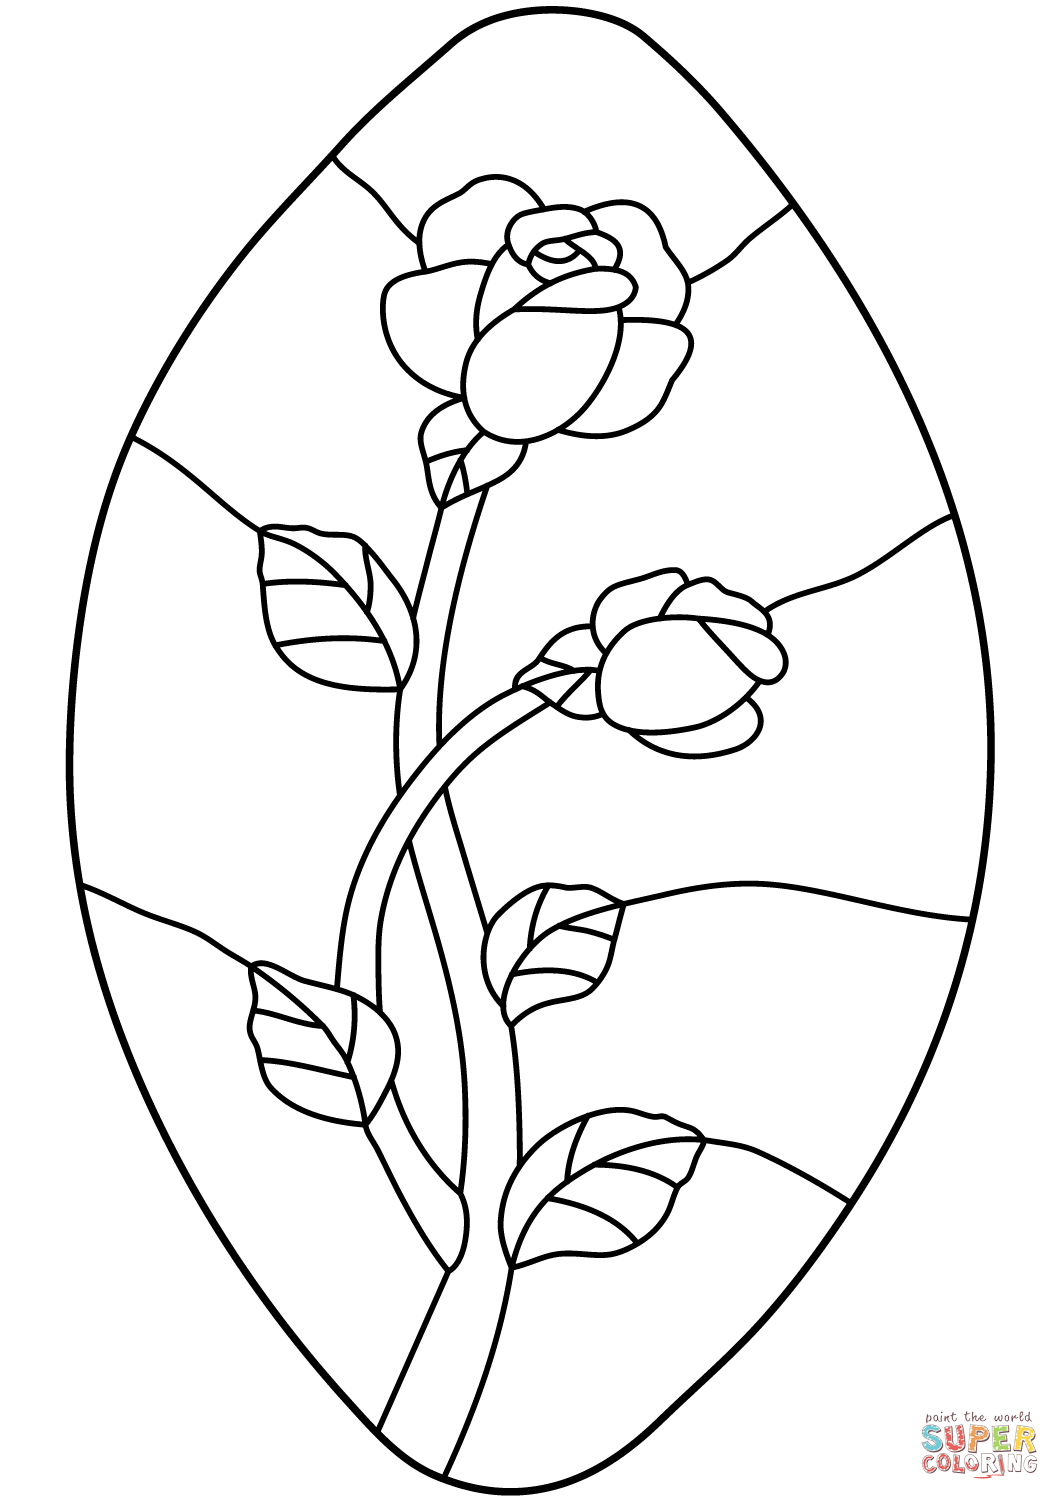 rose stained glass coloring pages stained glass rose coloring page by richard67915 on deviantart stained pages glass coloring rose